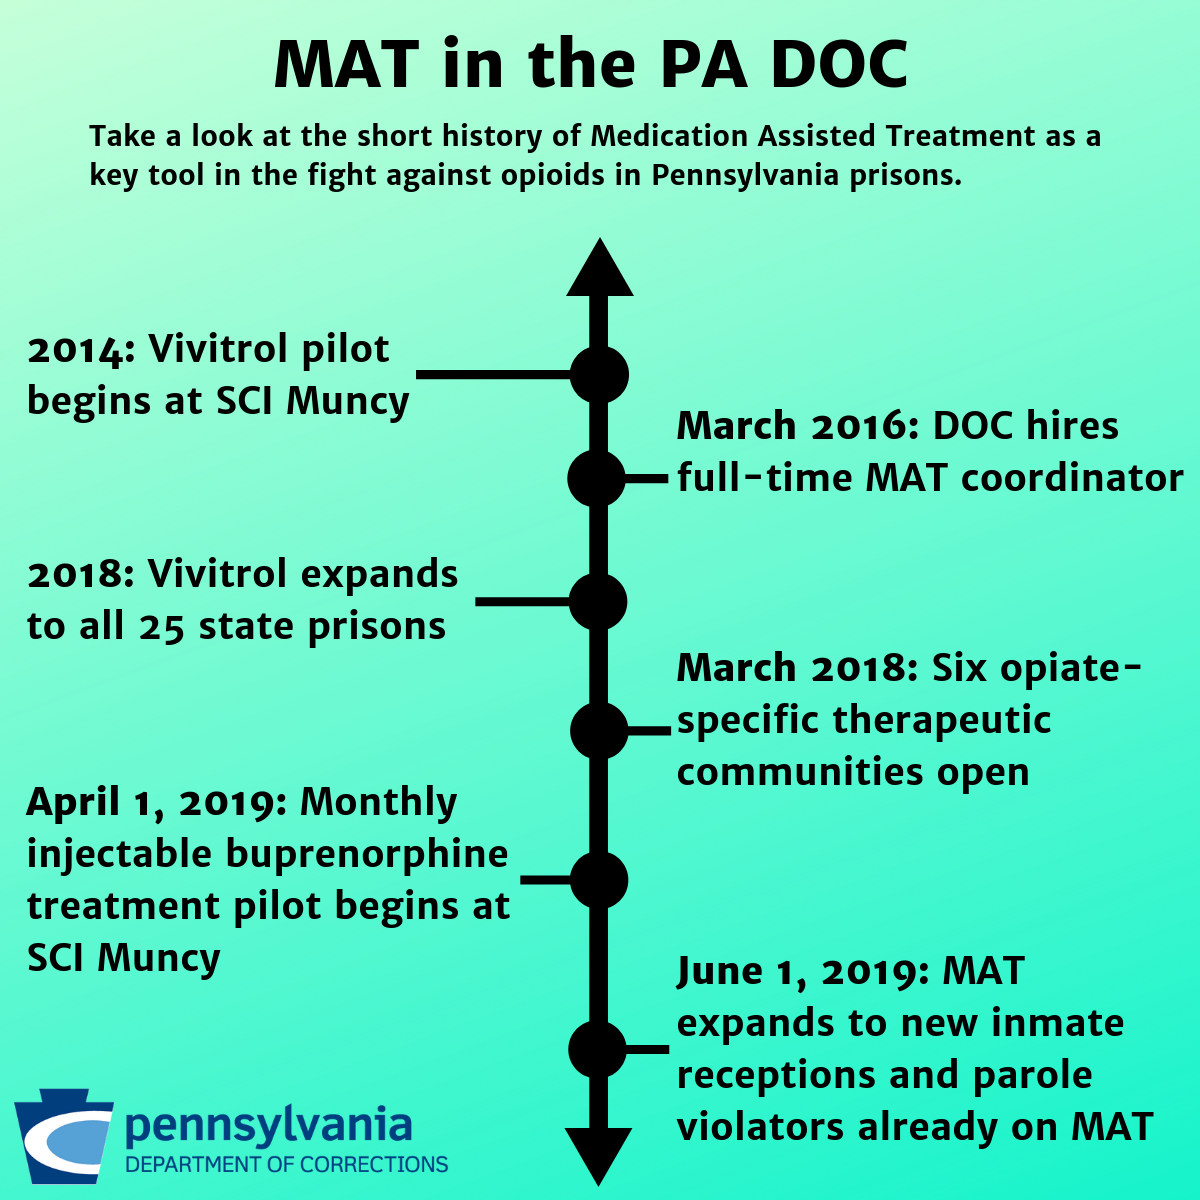 A graphic explaining the history of MAT